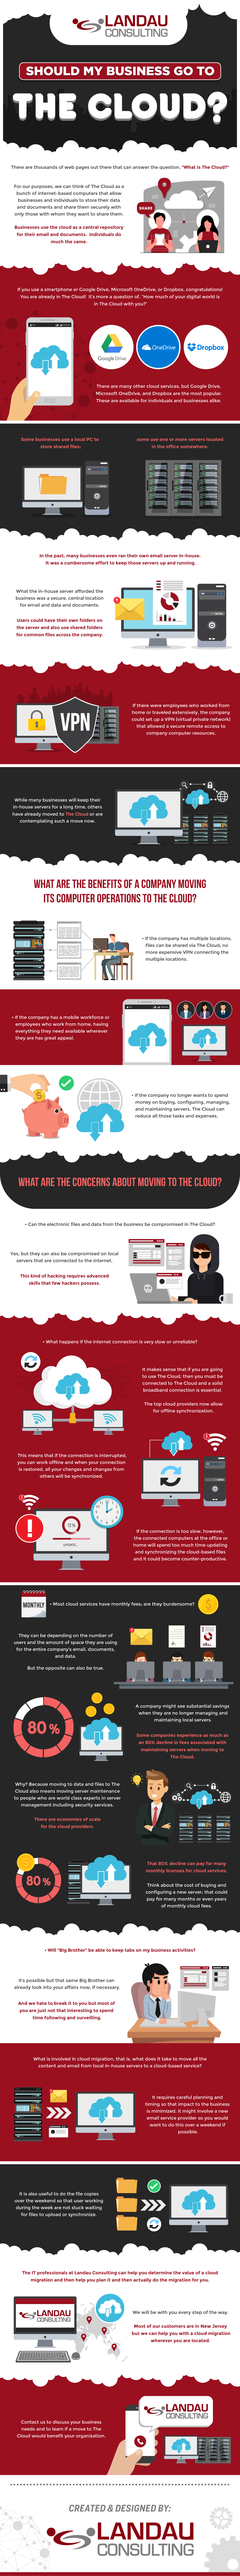 Should My Business Go to The Cloud? #infographic